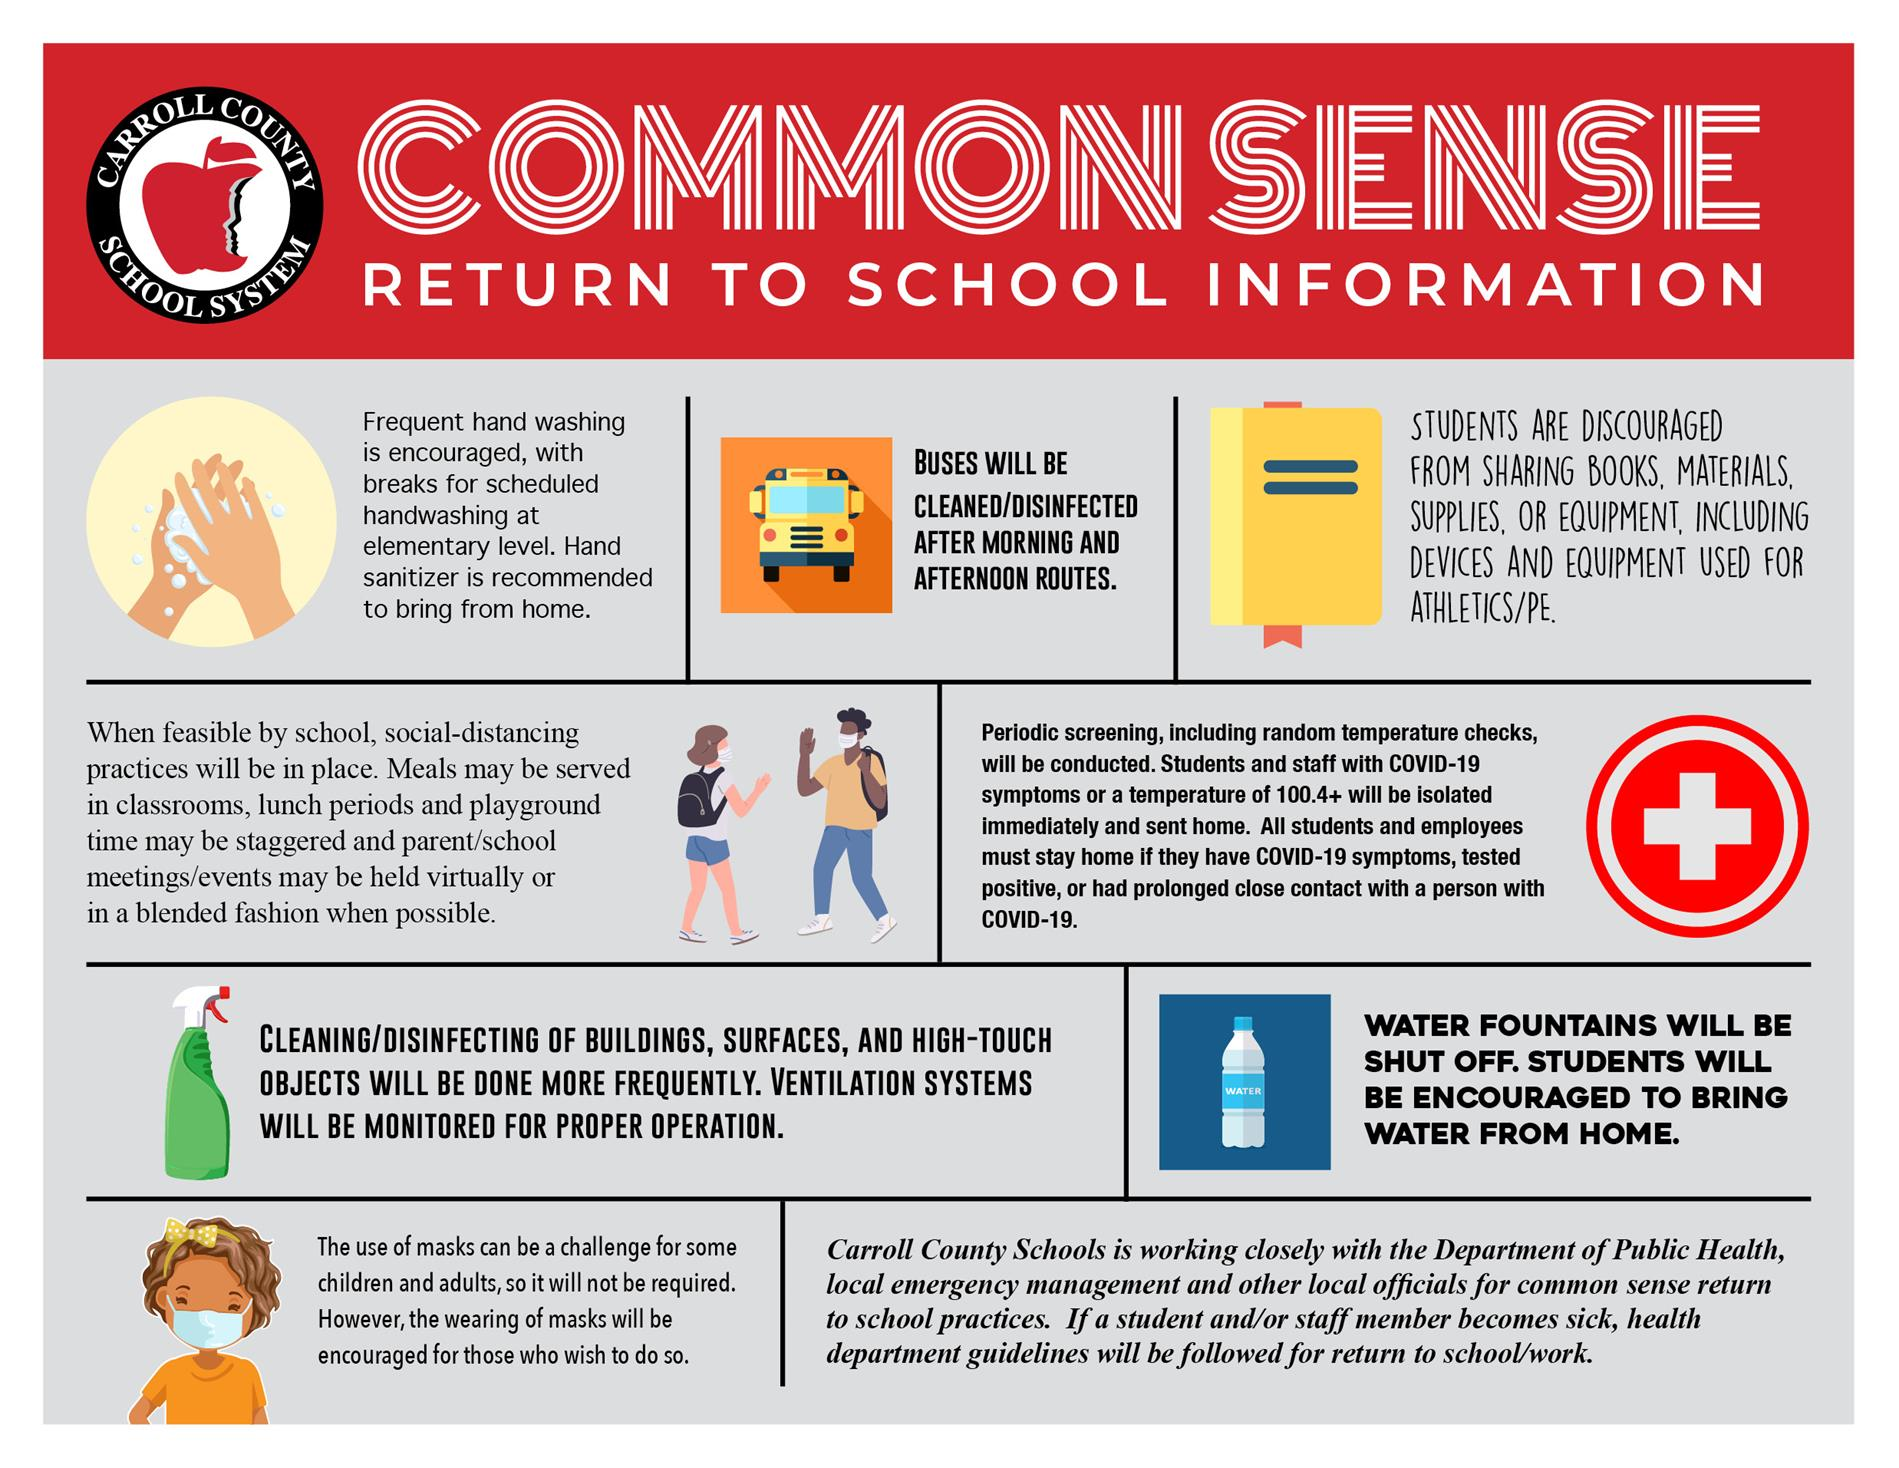 Common Sense Return to School